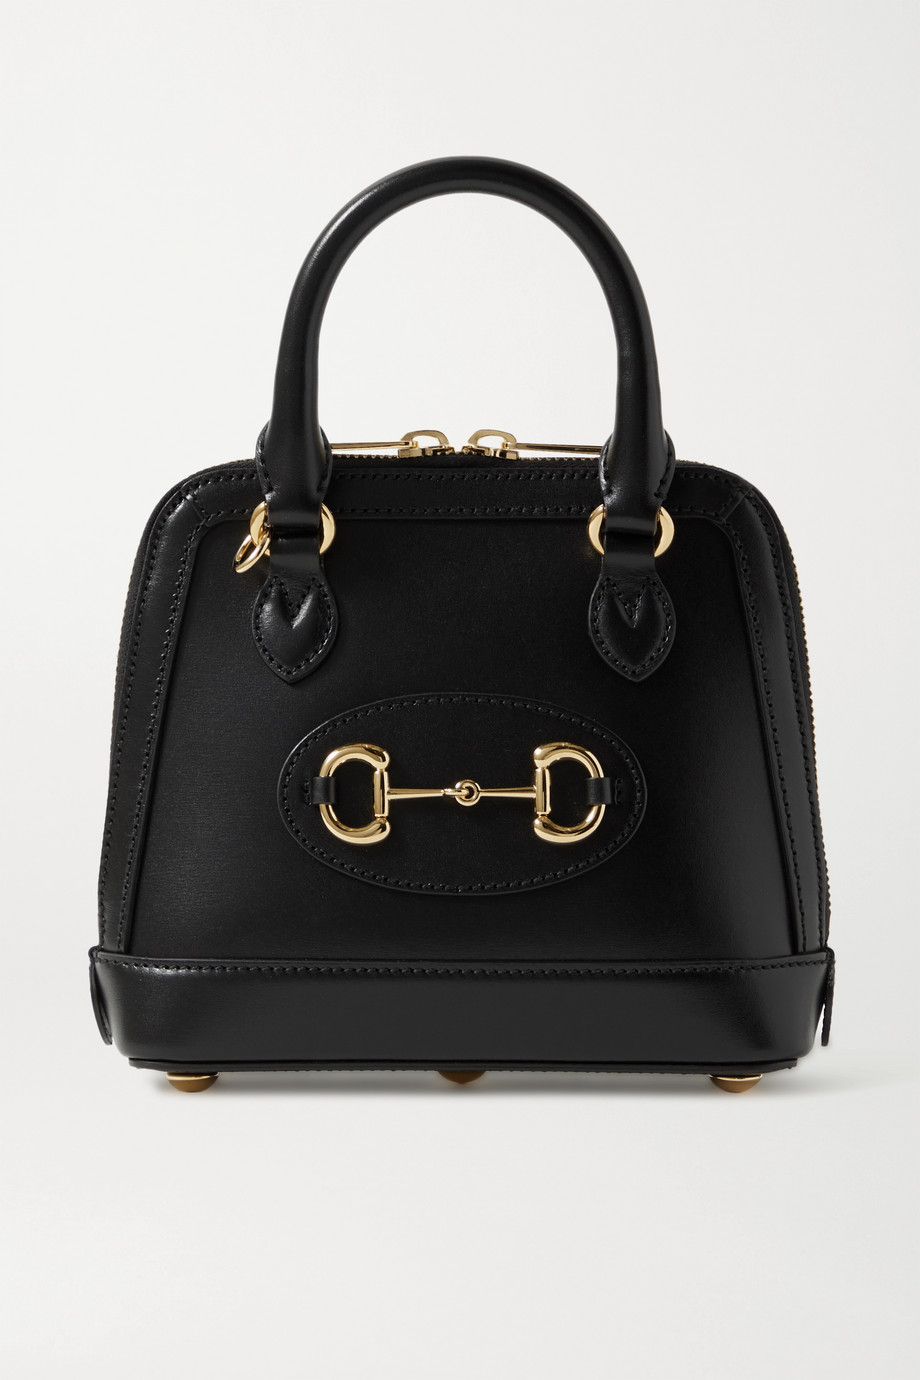 Gucci Mini sac à main en cuir à mors de cheval 1955 - NET SUSTAIN